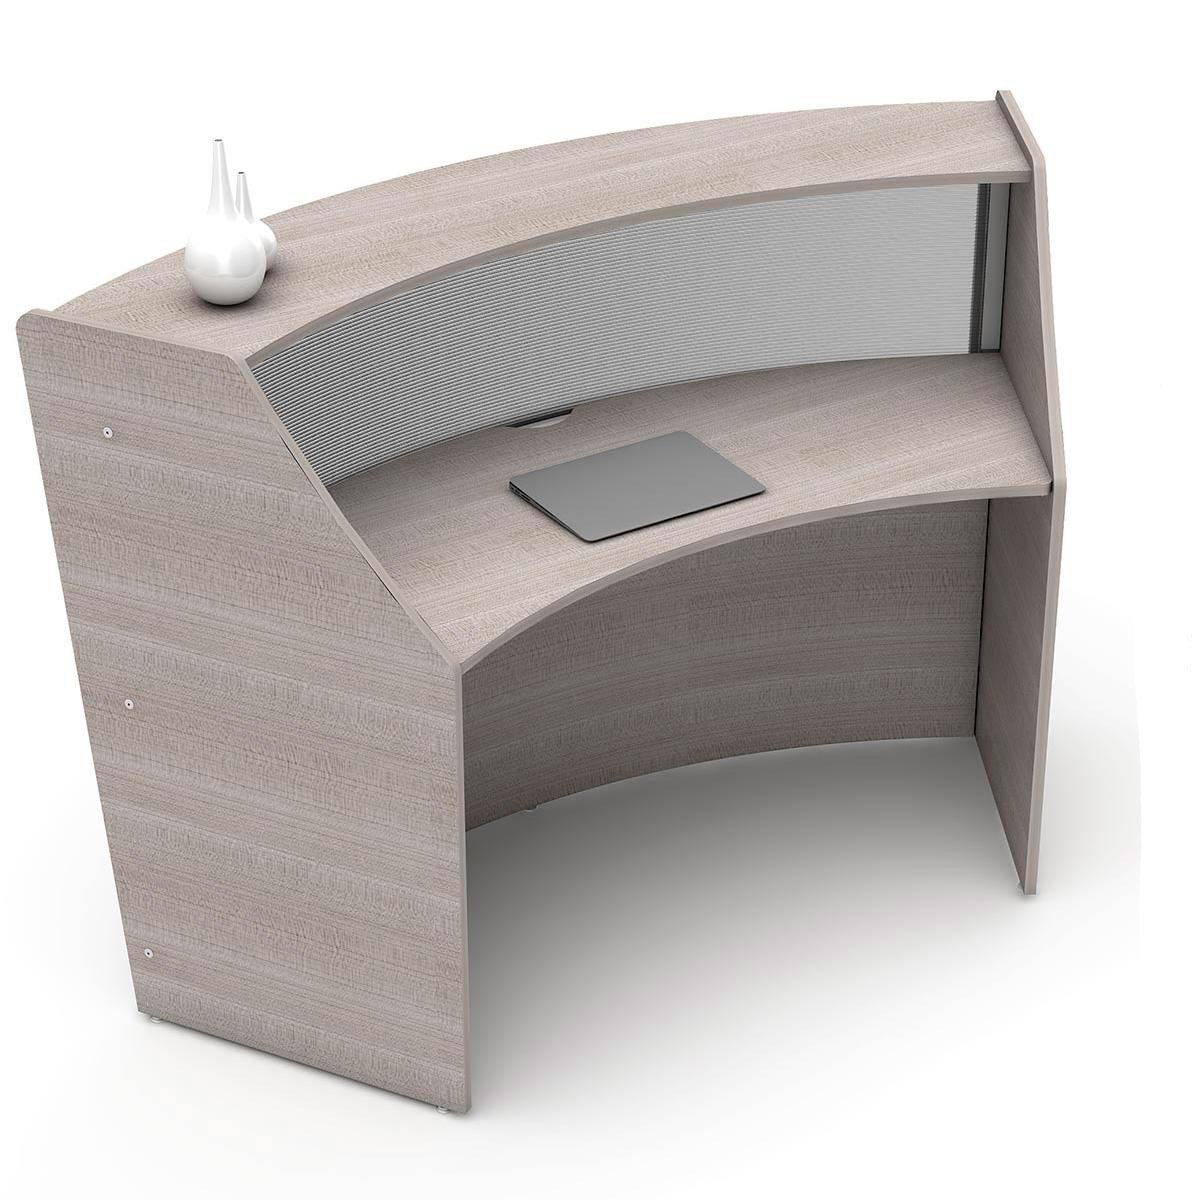 Linea Italia Curved Reception Desk, Single Unit,